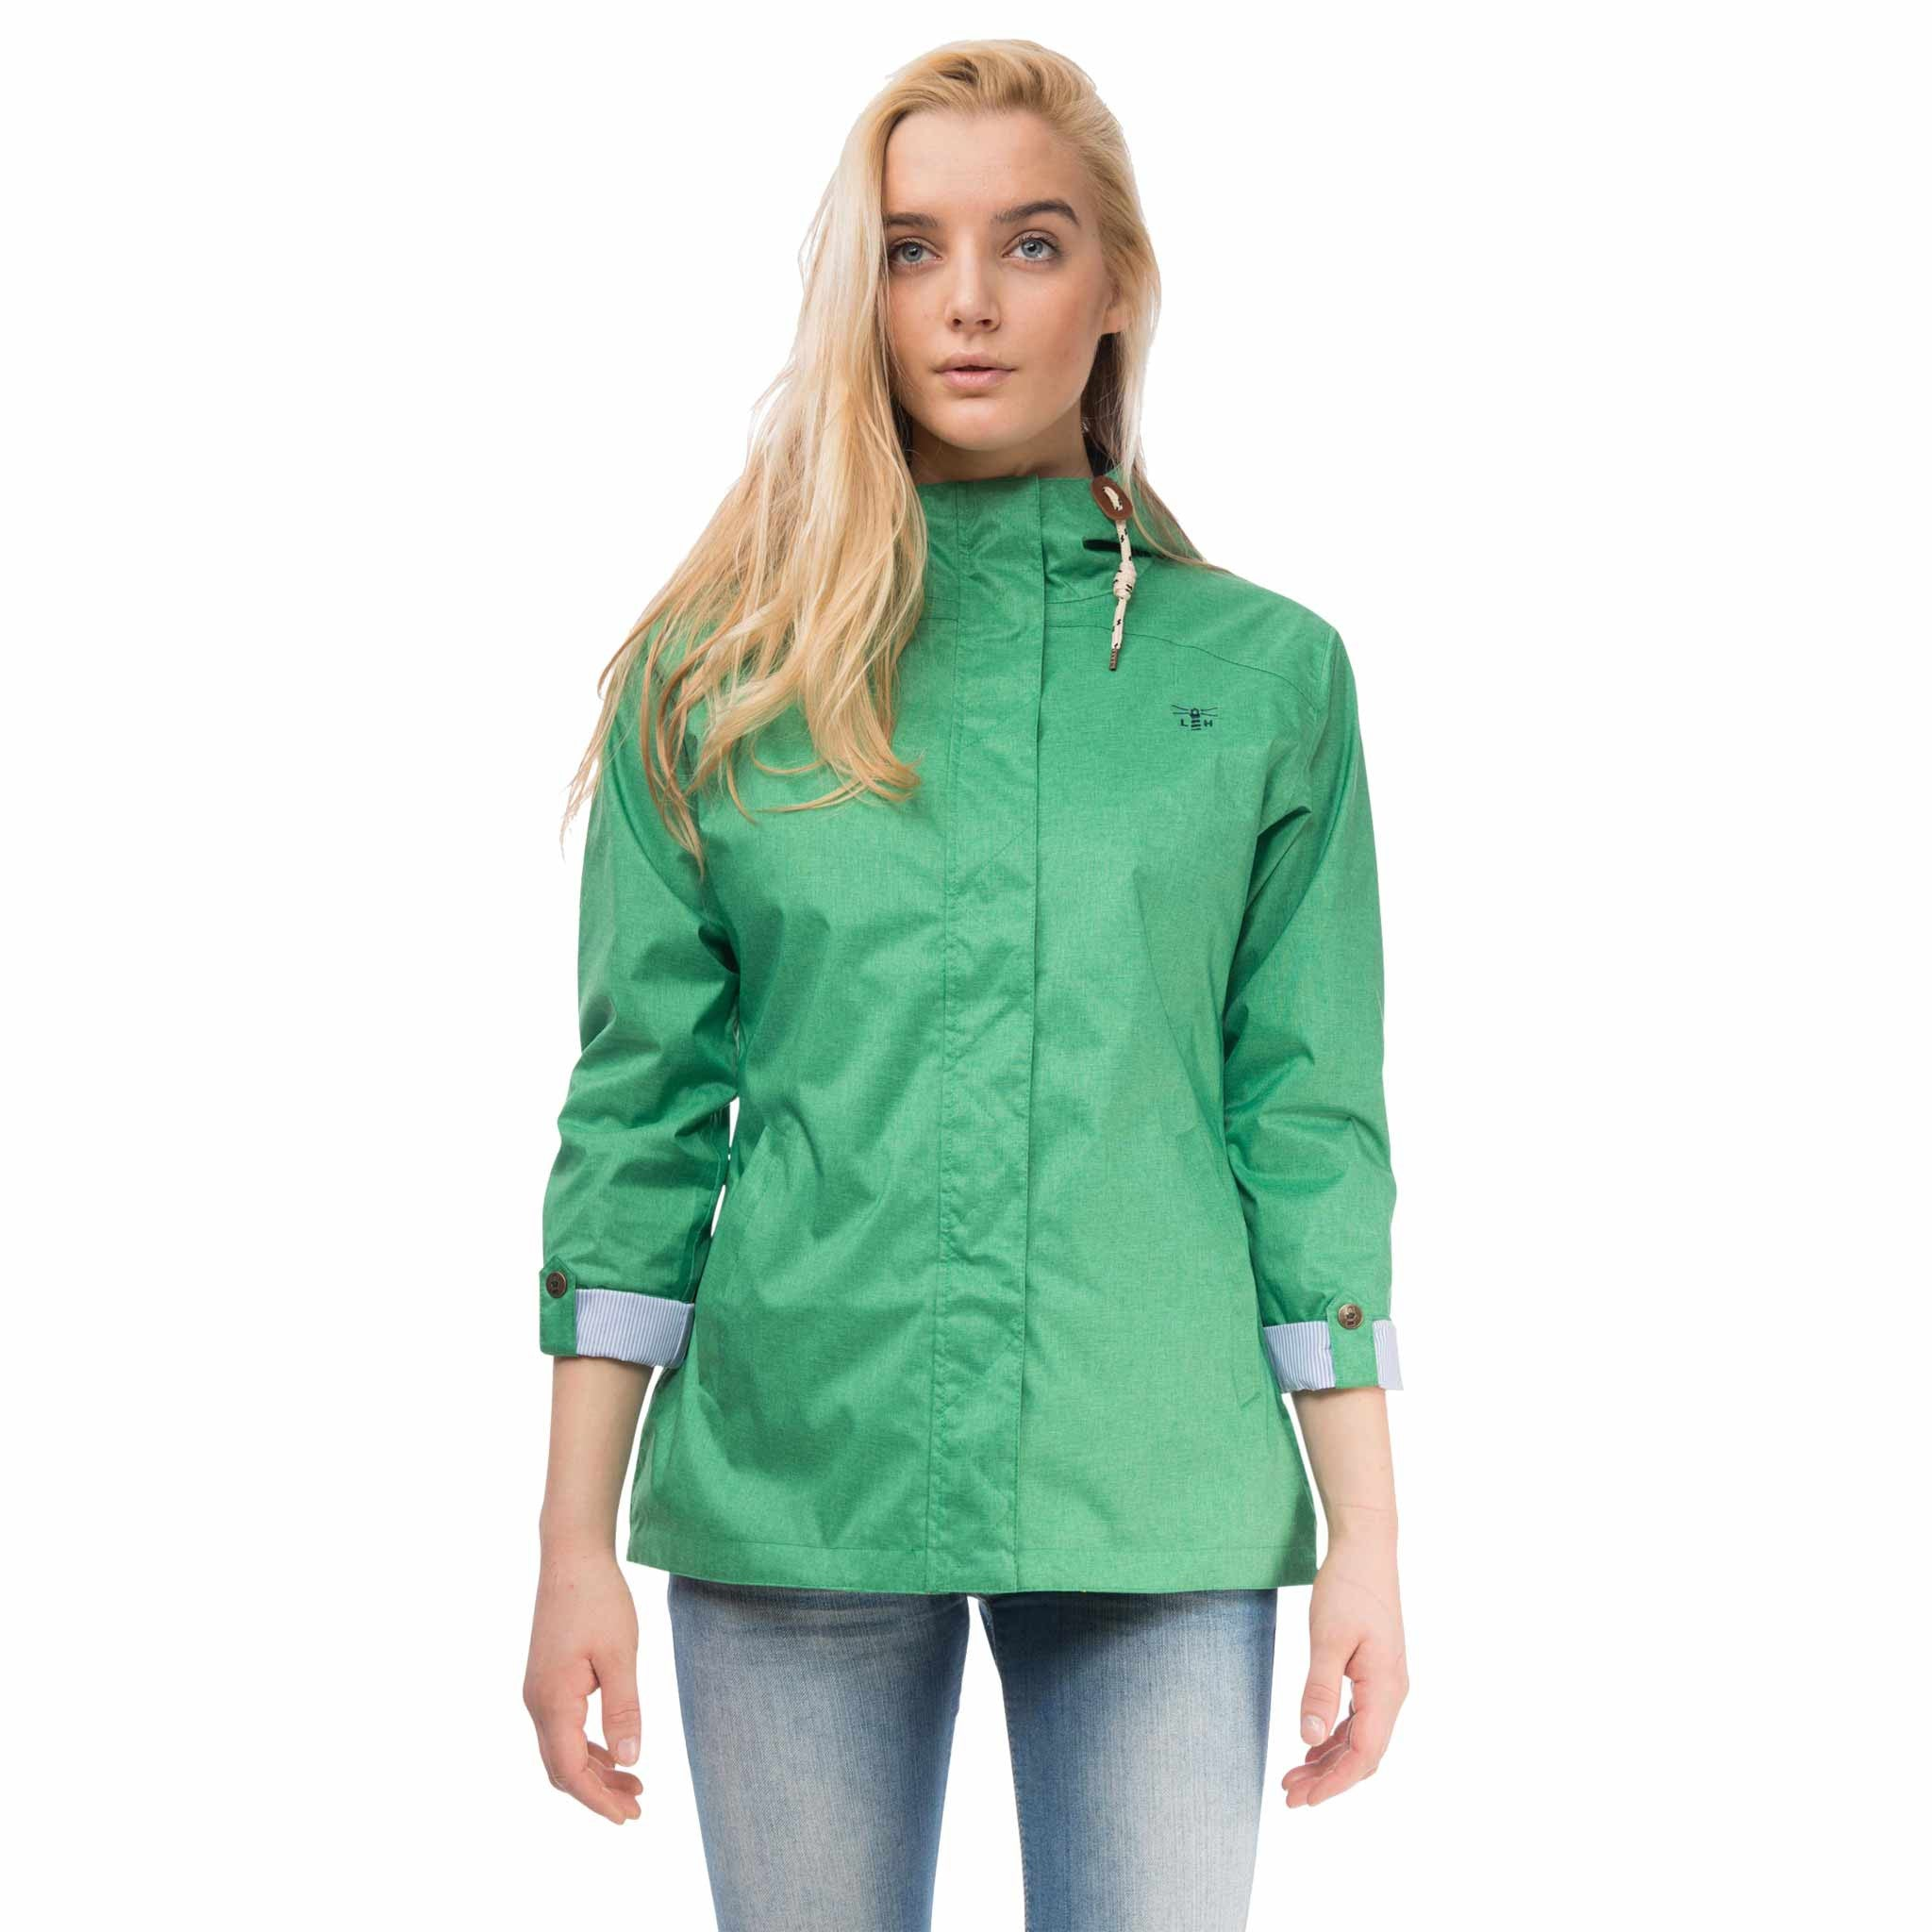 Bluejay Womens Waterproof Jacket in Seagrass Green, Modelled Front View | Lighthouse